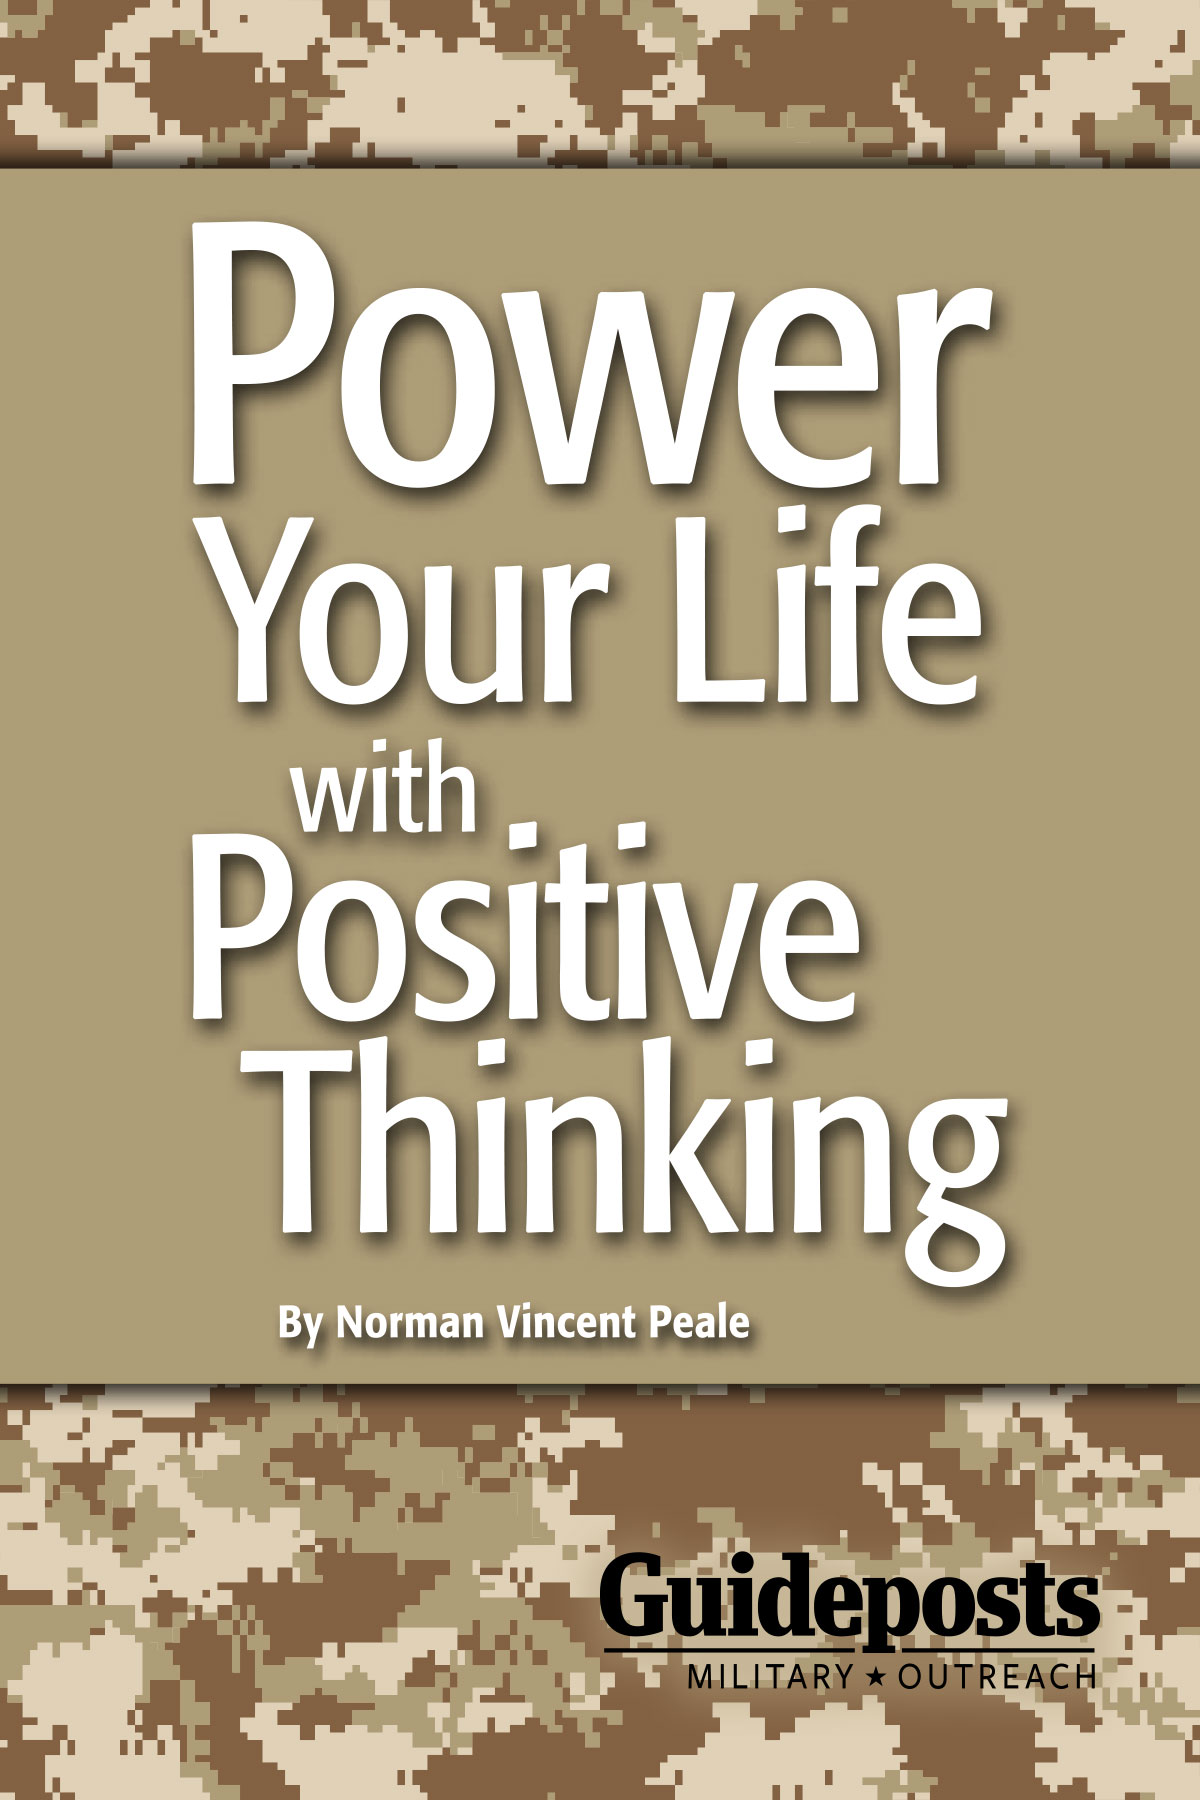 Power Your Life with Positive Thinking - Military